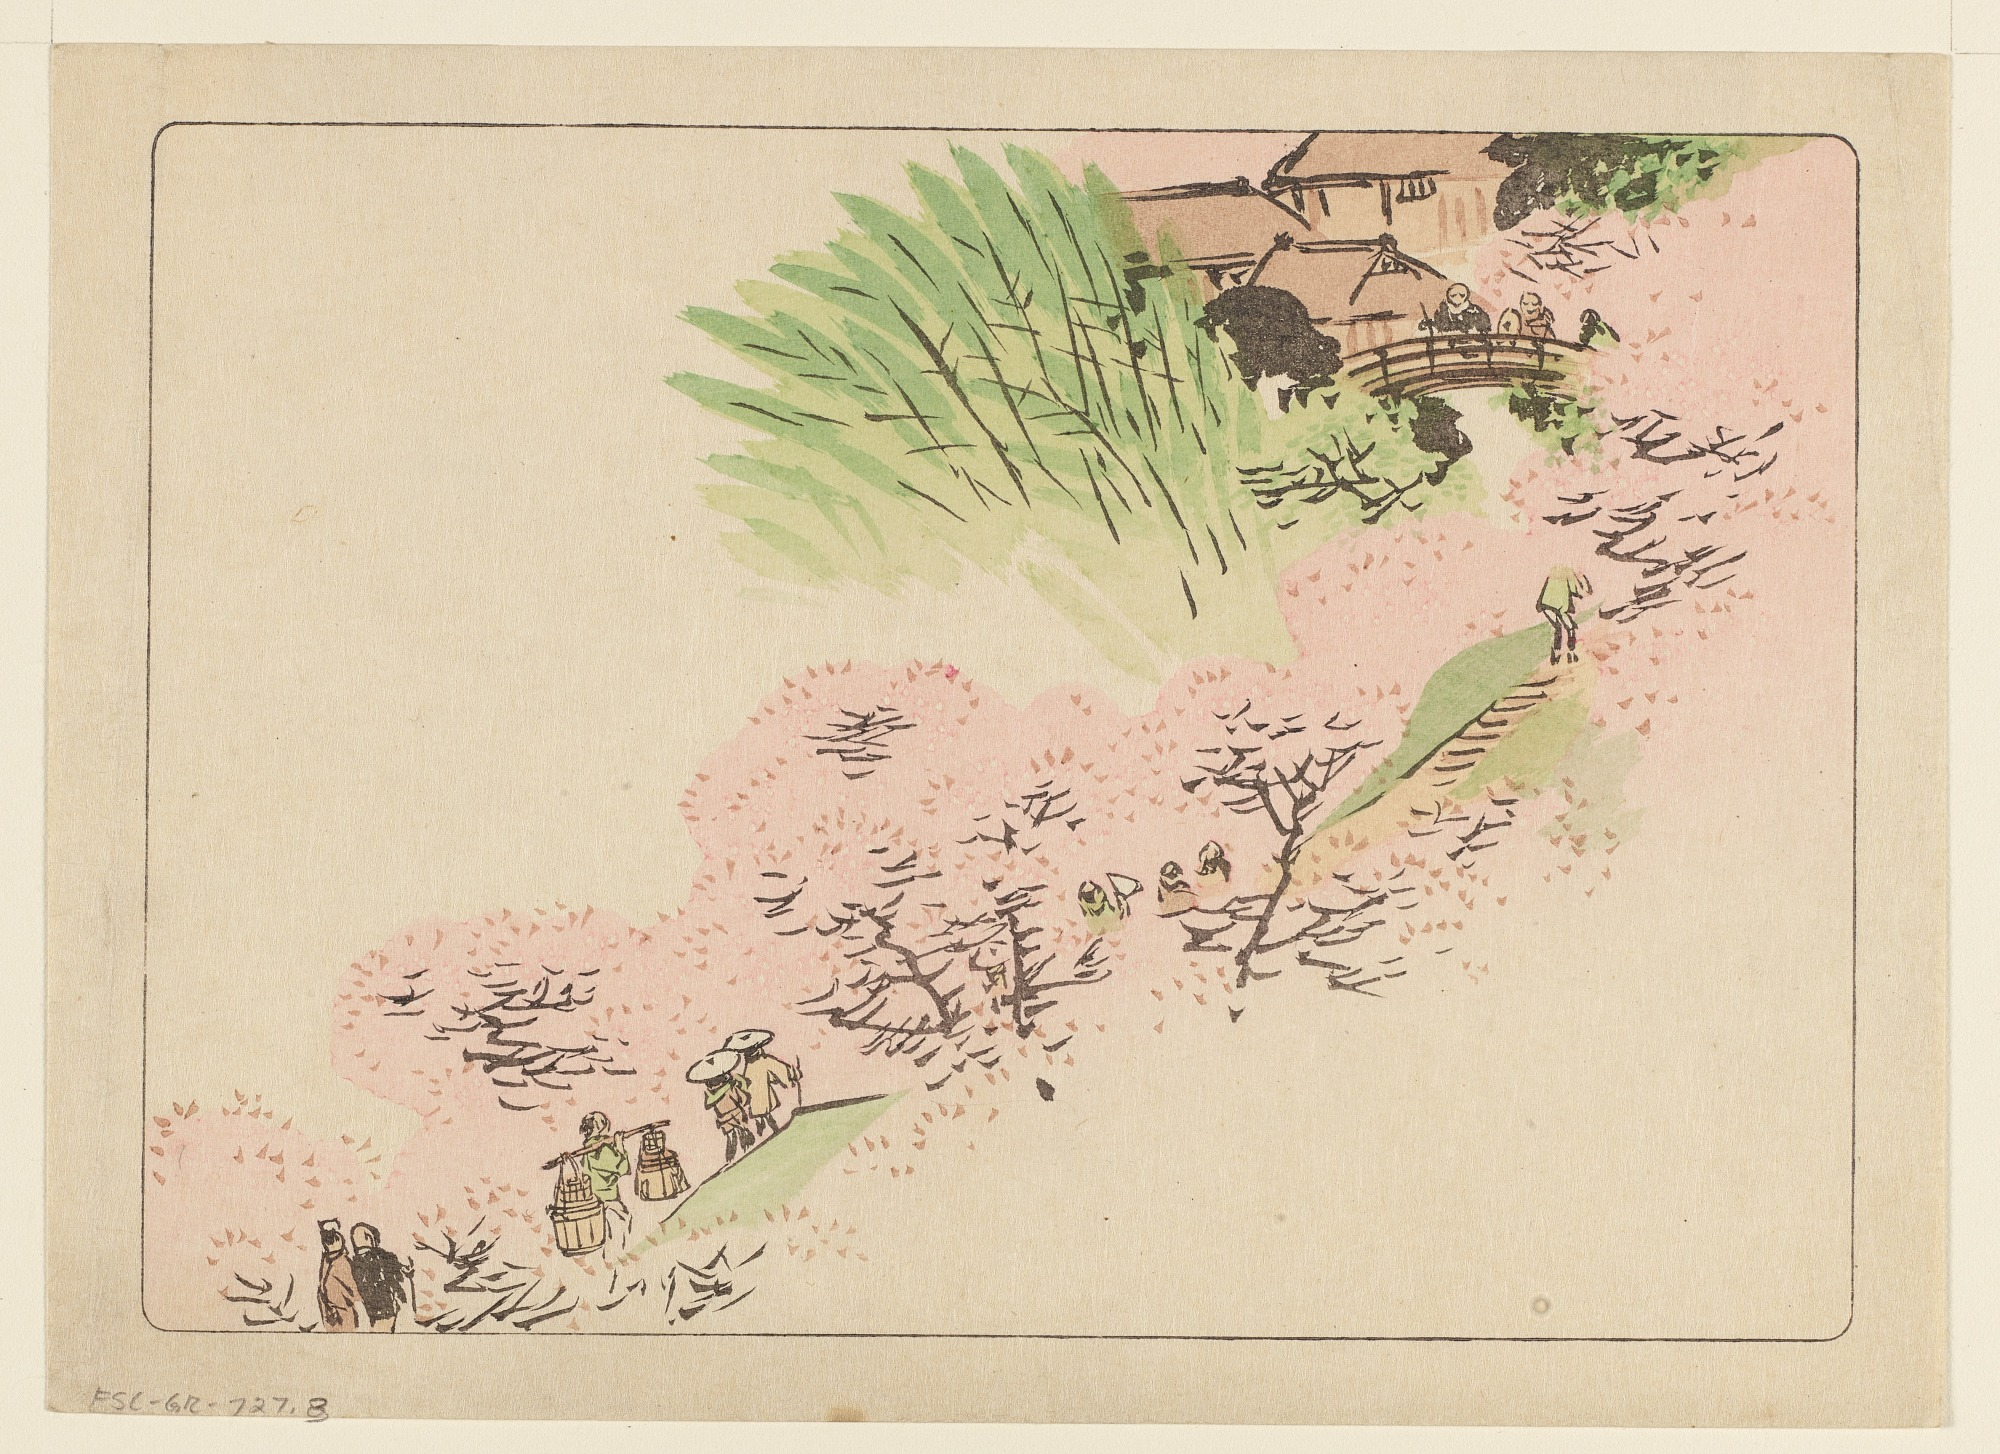 Spring landscape with mountain village, from set 4 of a Hana Kurabe series of 10 sets